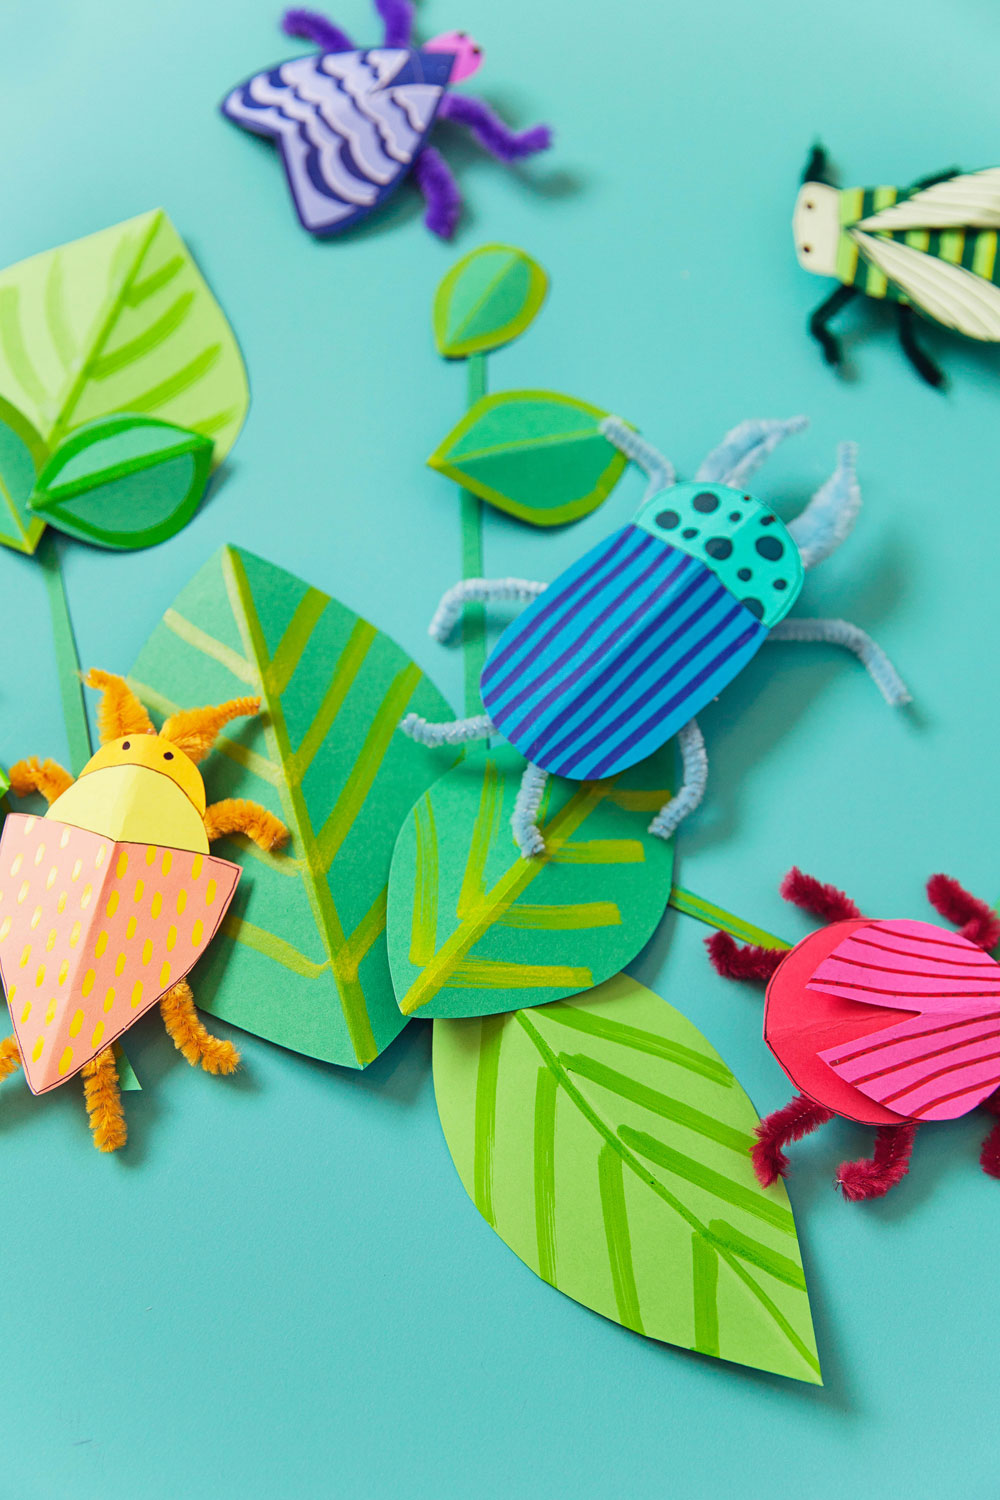 These cute DIY paper bugs are so much fun and a great craft with your kids.